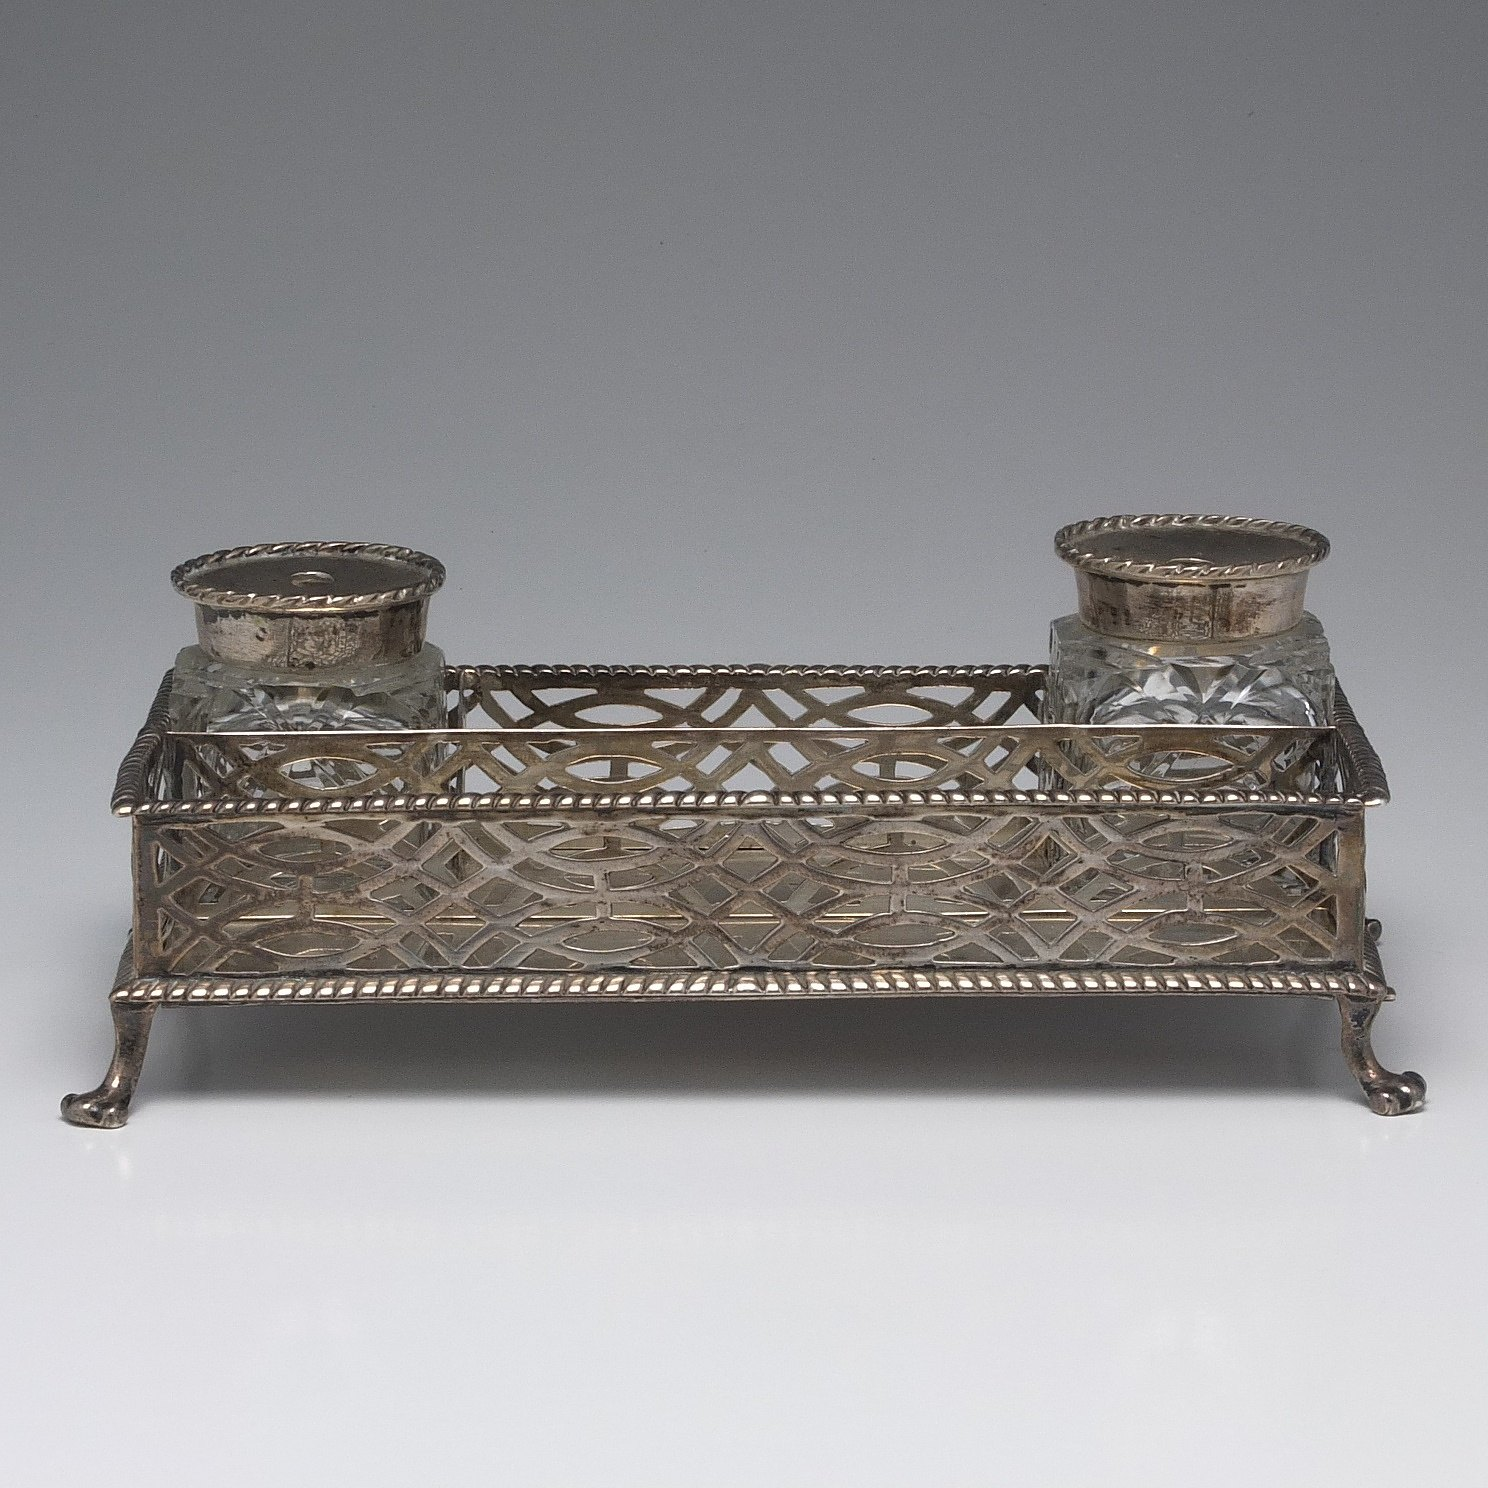 'George II Sterling Silver Pierced Desk Set with Lion Paw Feet and Cut Crystal Inkwells London 1759'